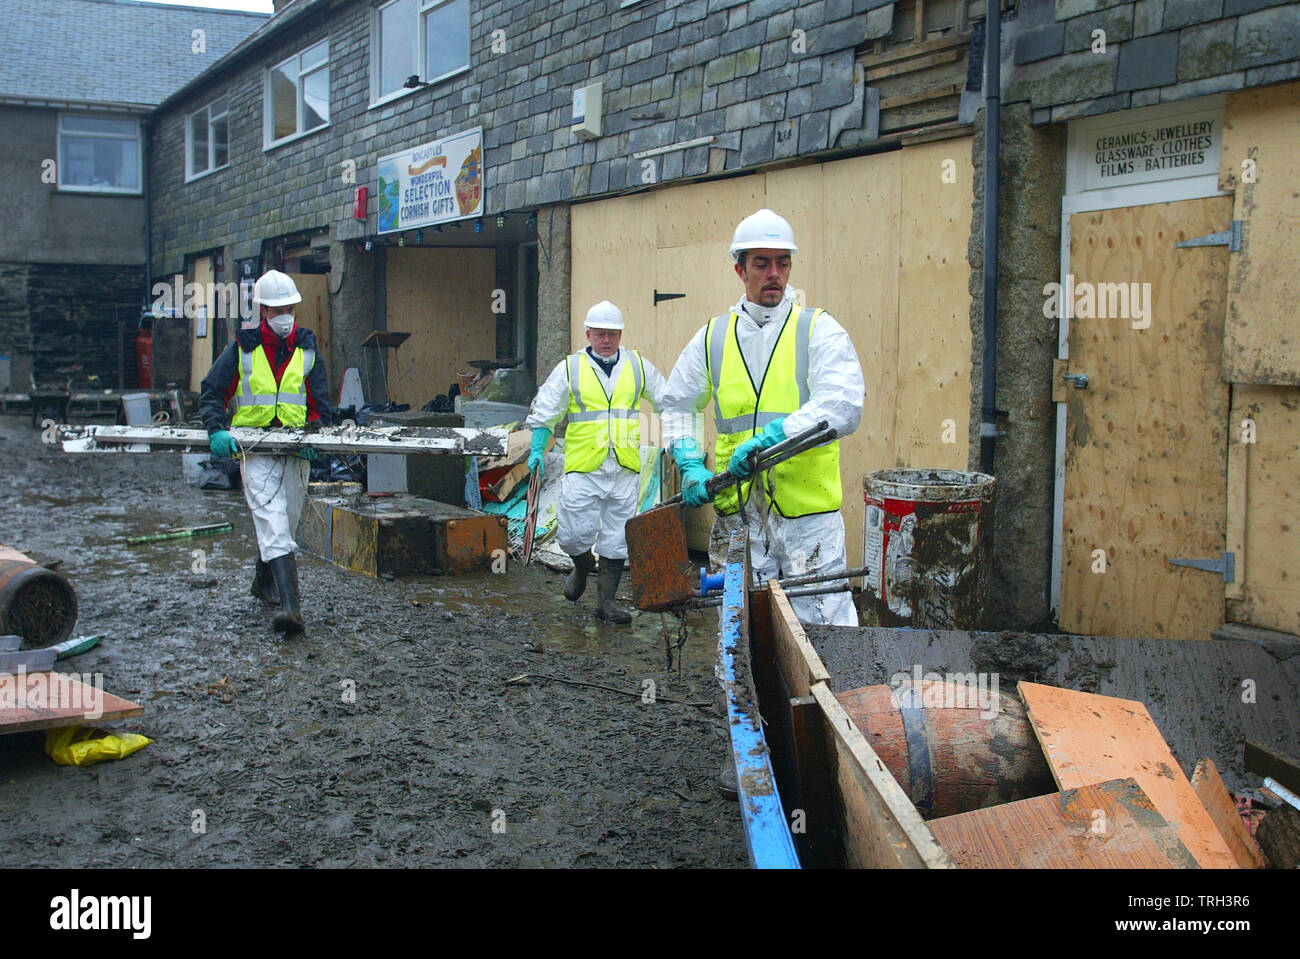 28.08.2004 - The clean-up operation continues in Boscastle in Cornwall this morning after the flood on 16.08.2004. - Stock Image